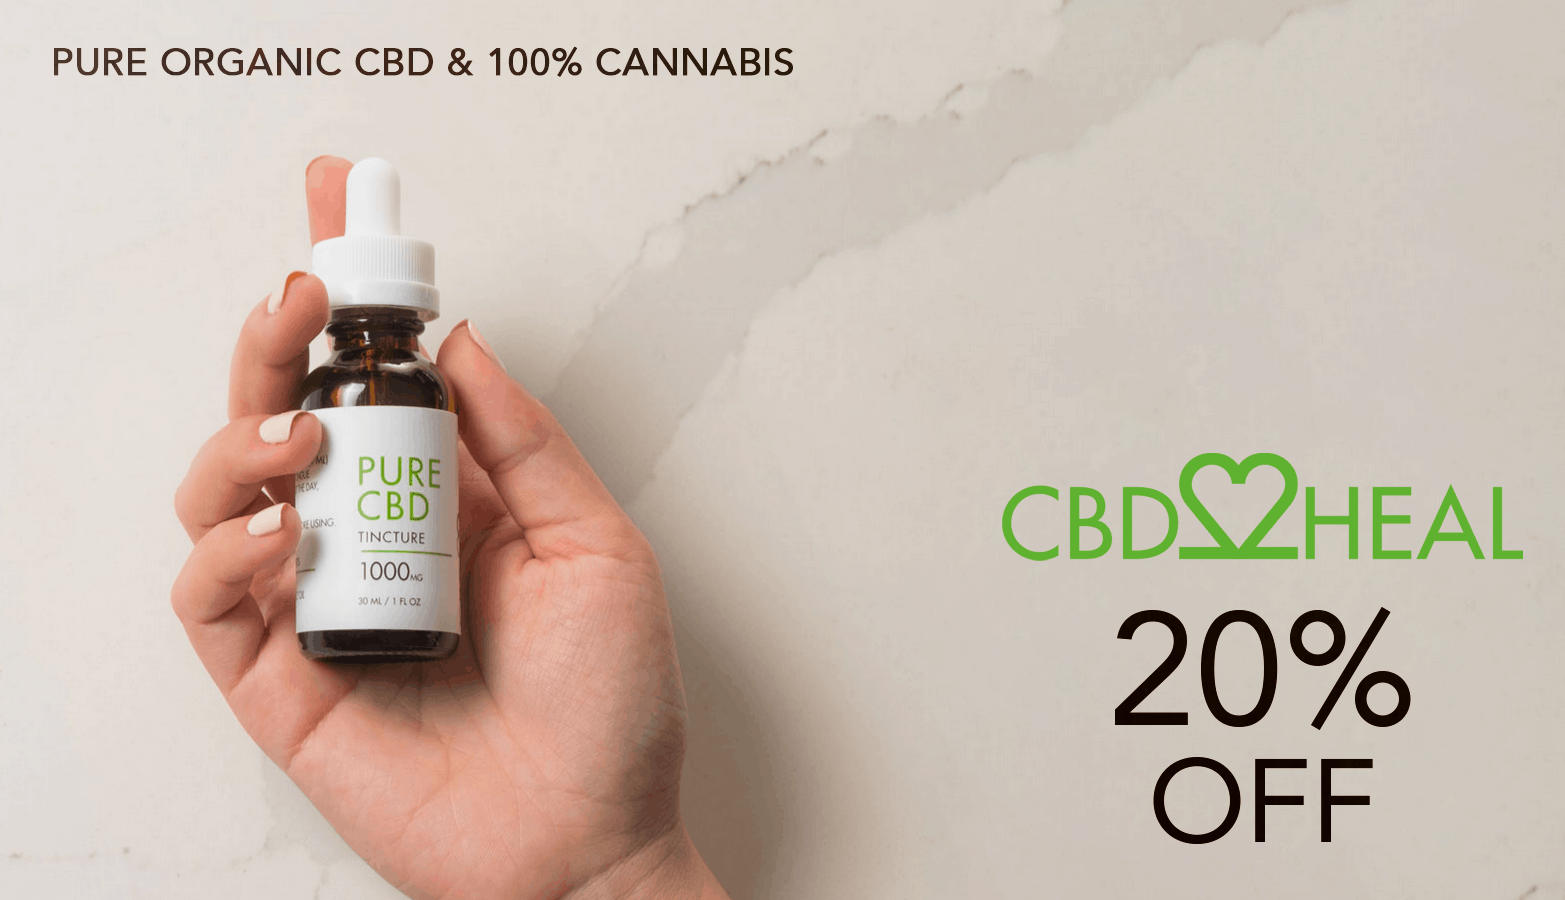 CBD2HEAL CBD Coupon Code Offer Website